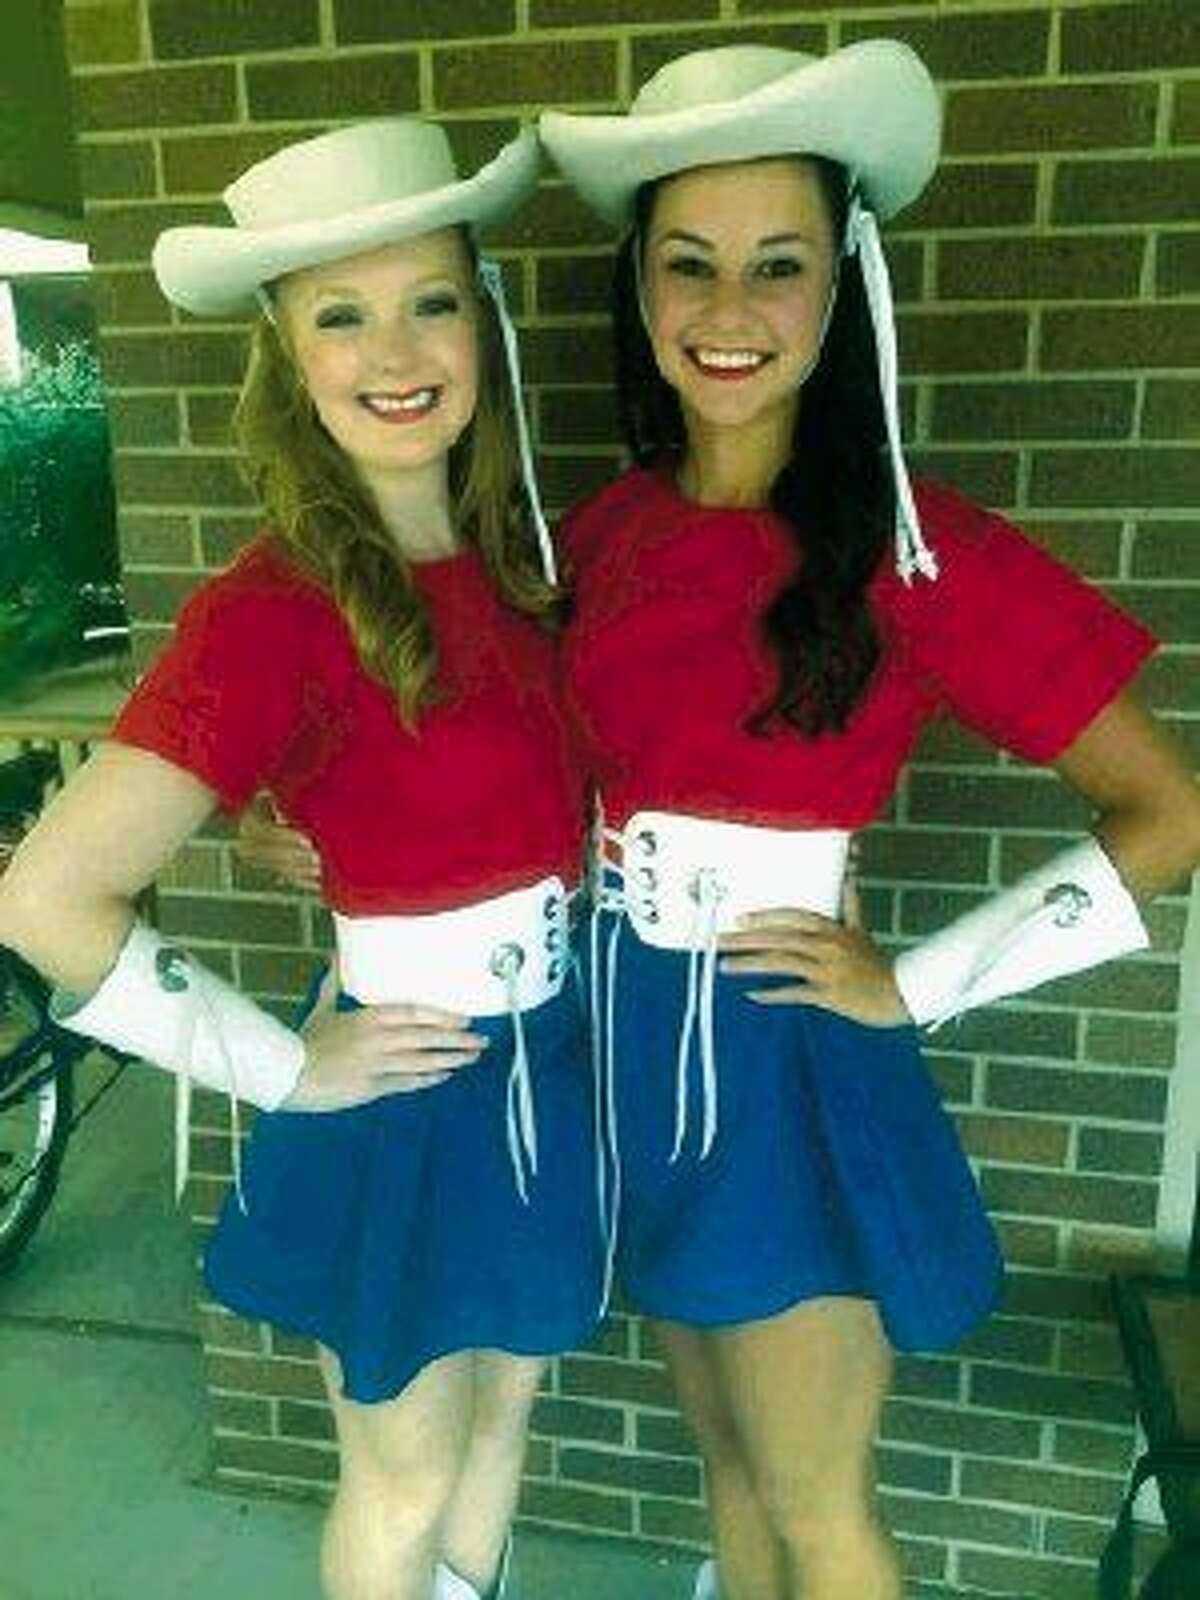 KHS graduate Shelby Westover and KPHS graduate Hannah Marucci pose together in their Kilgore Rangerette uniforms of red, white and blue.